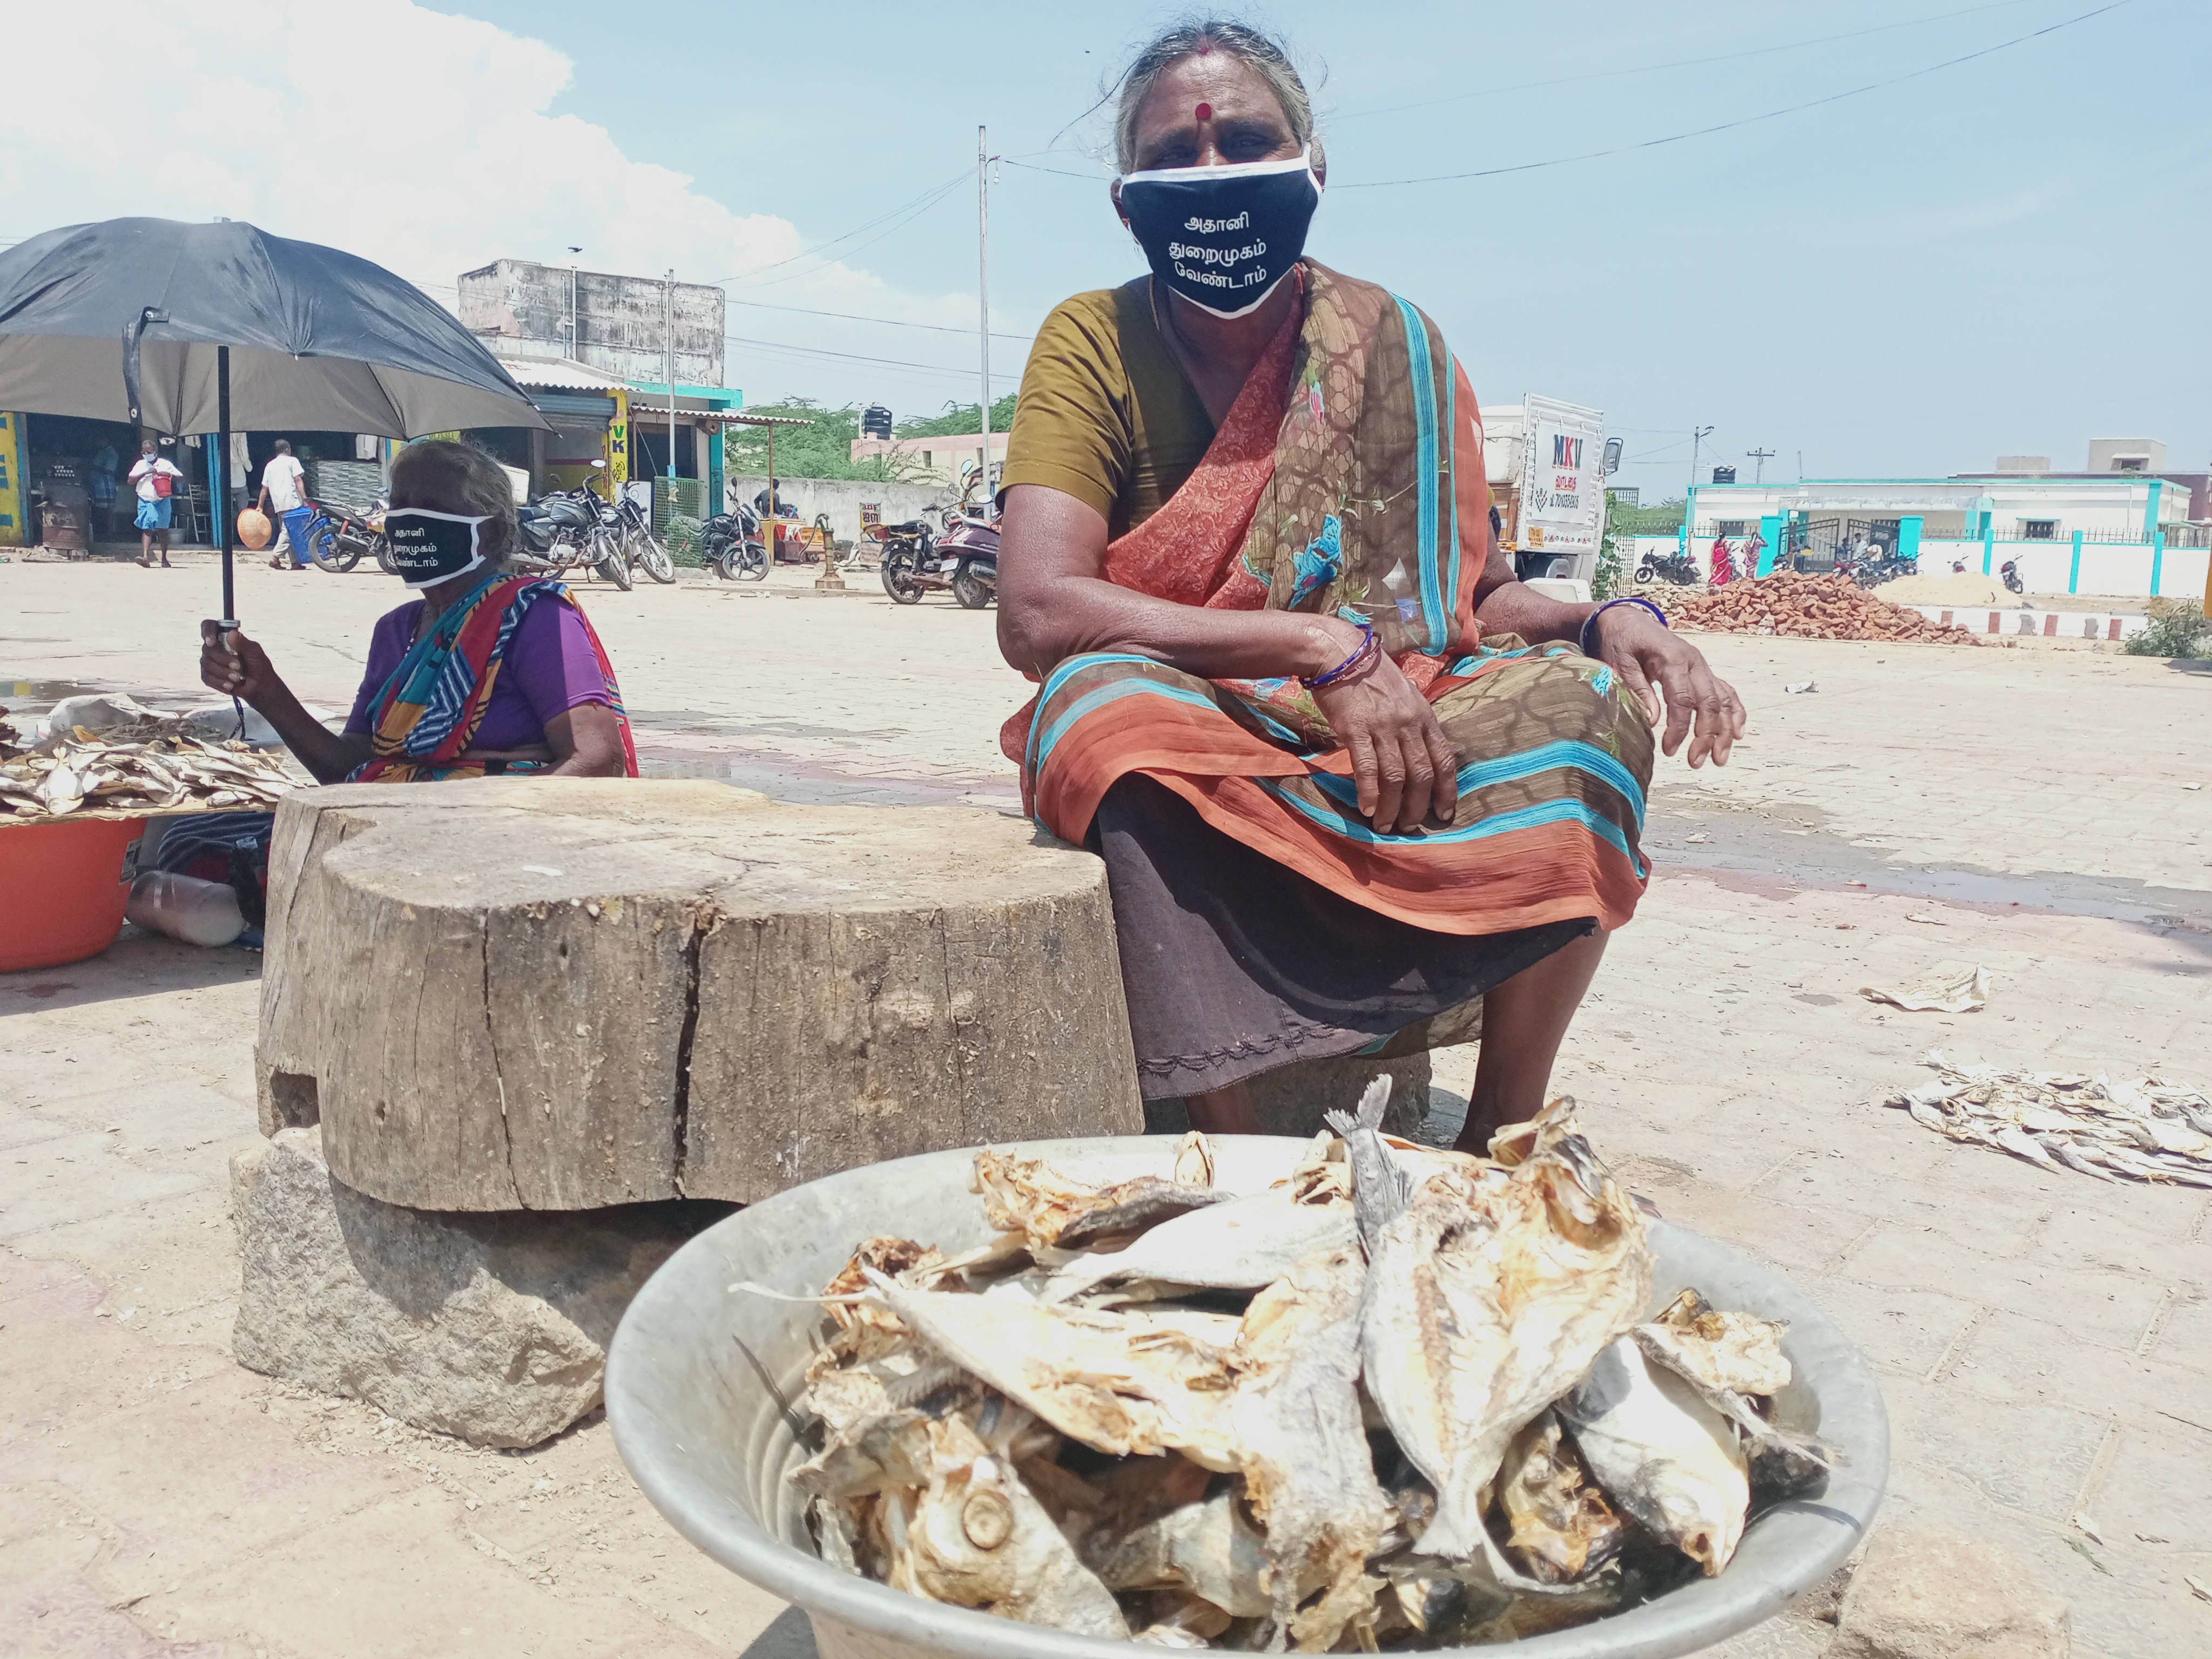 9. Women fishers are the backbone of the region's economy. They will be particularly affected if the fishing livelihoods collapse. Many women single-handedly raise children and support households by salting, drying and selling fish.